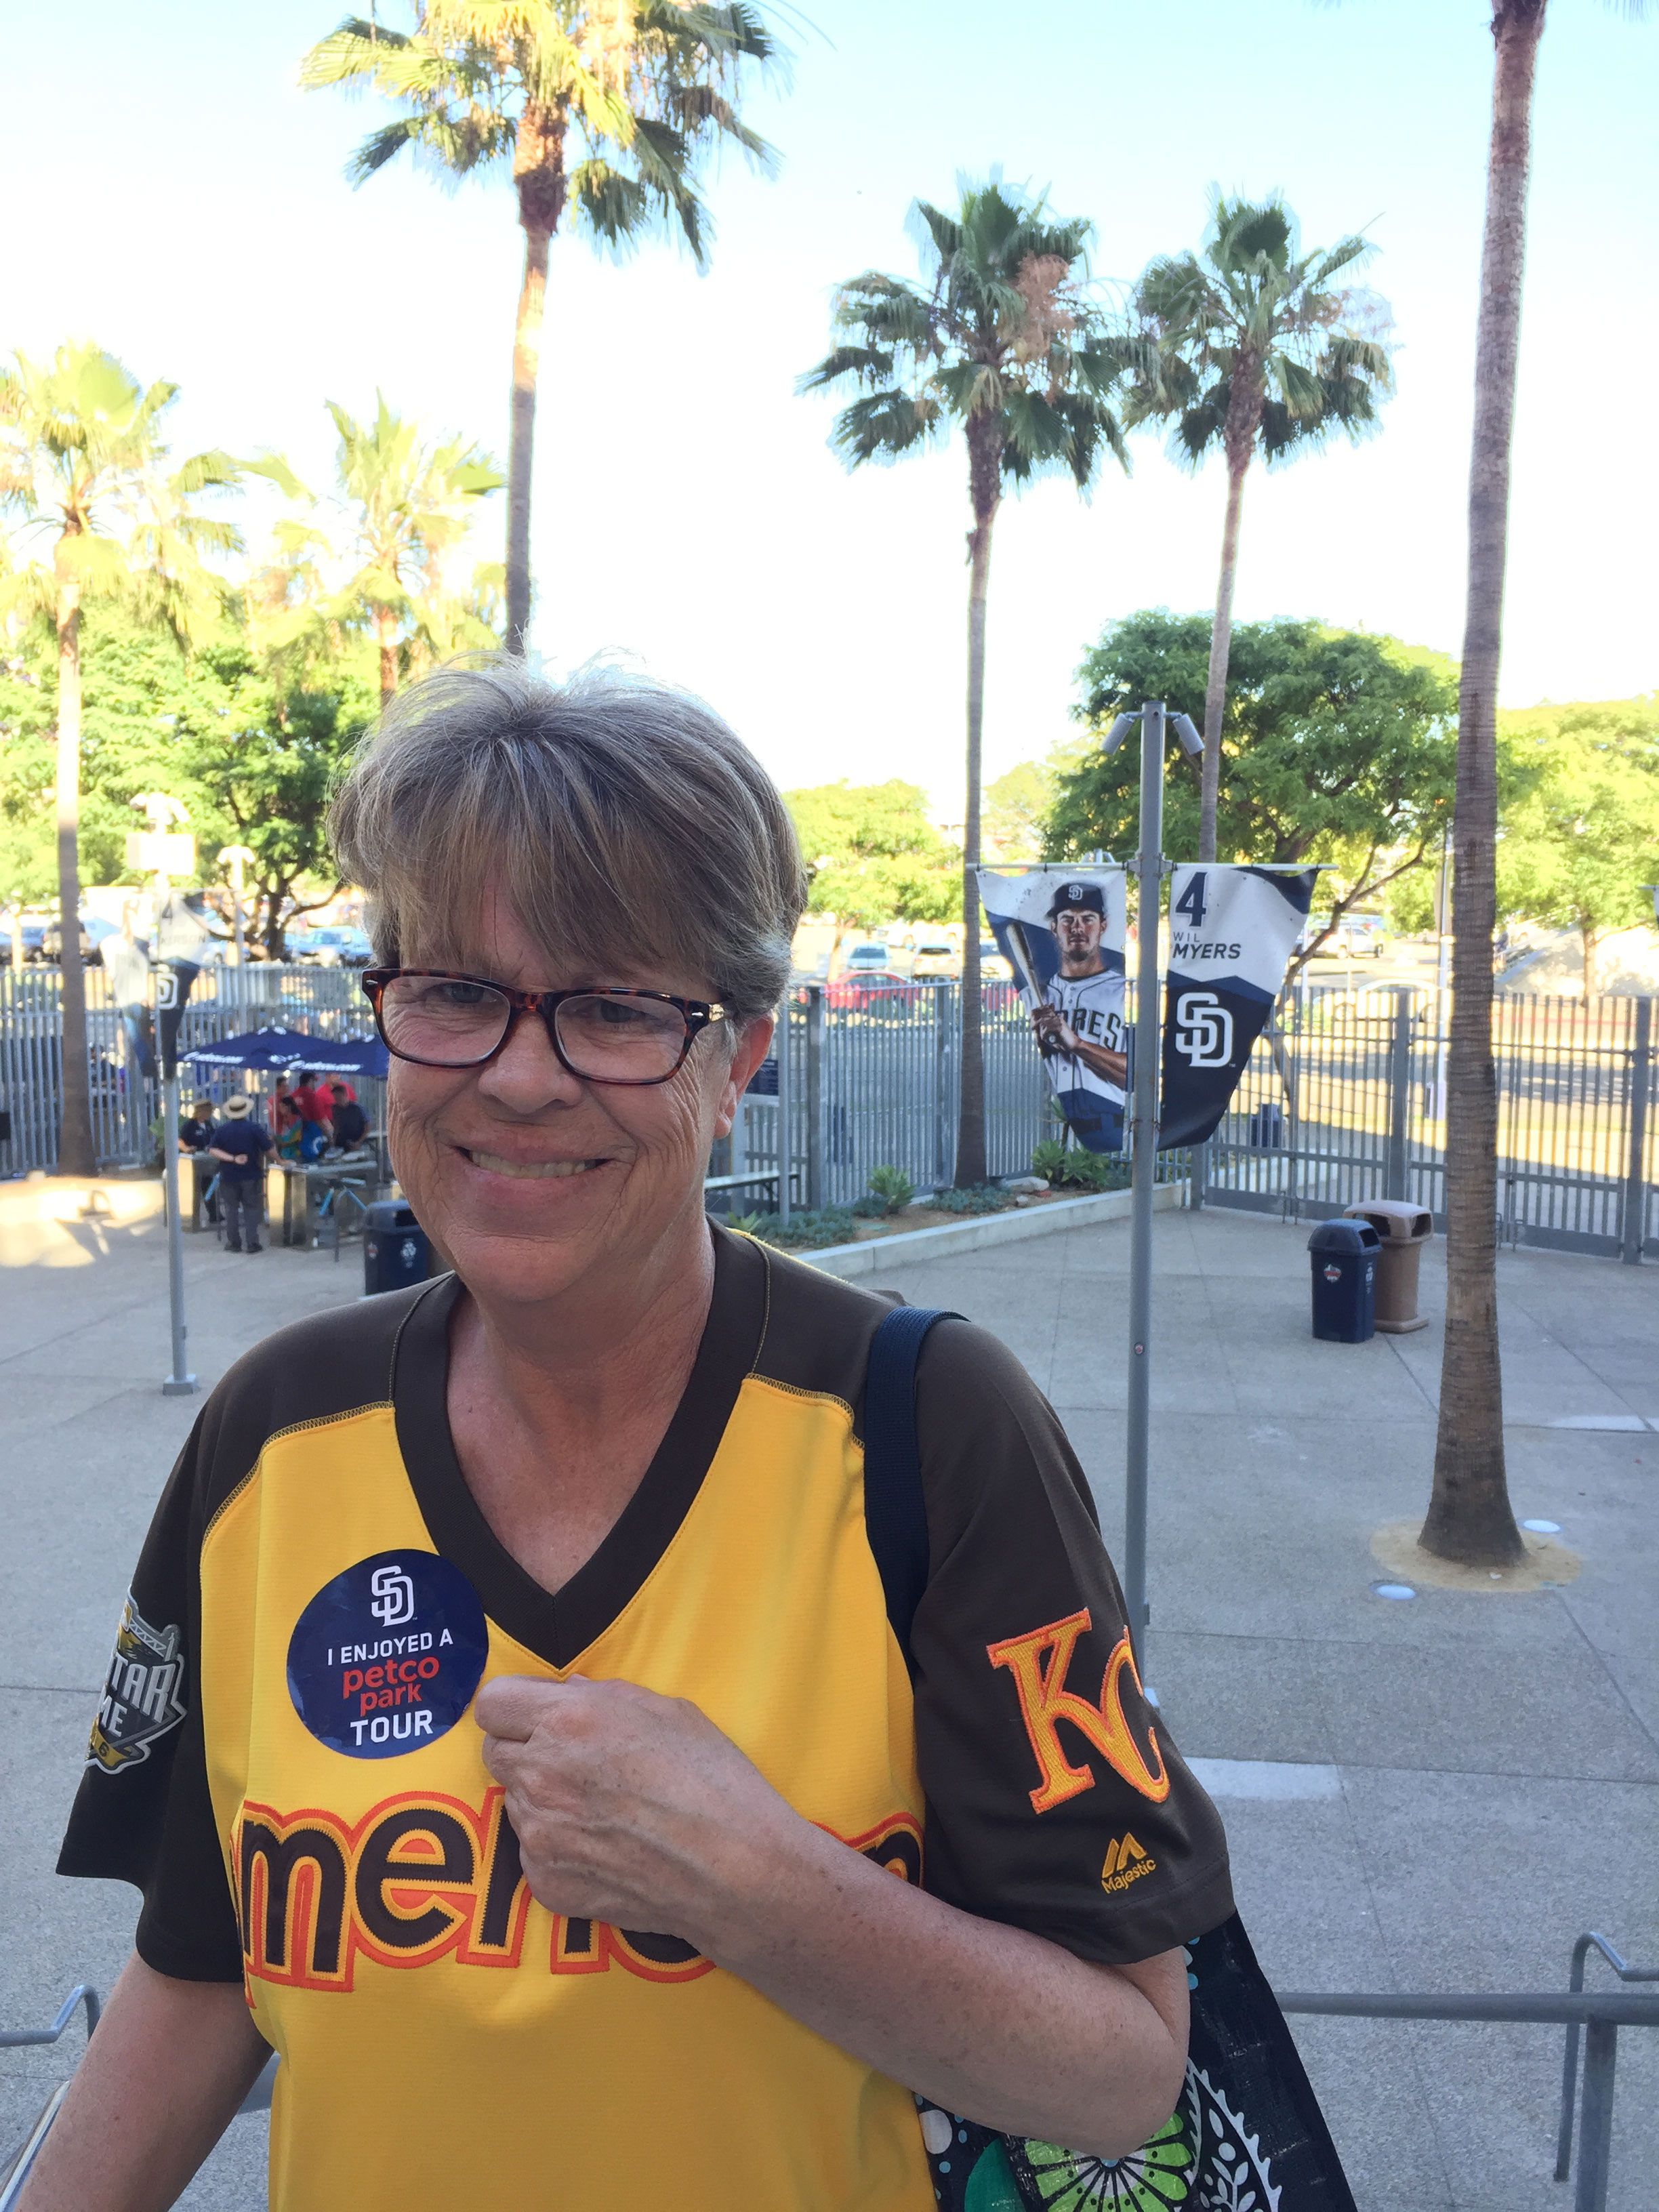 a72782a47 Here, my super-fan mother is posing with a banner of Myers. He's a first  baseman for the Padres who was originally signed by the Royals.